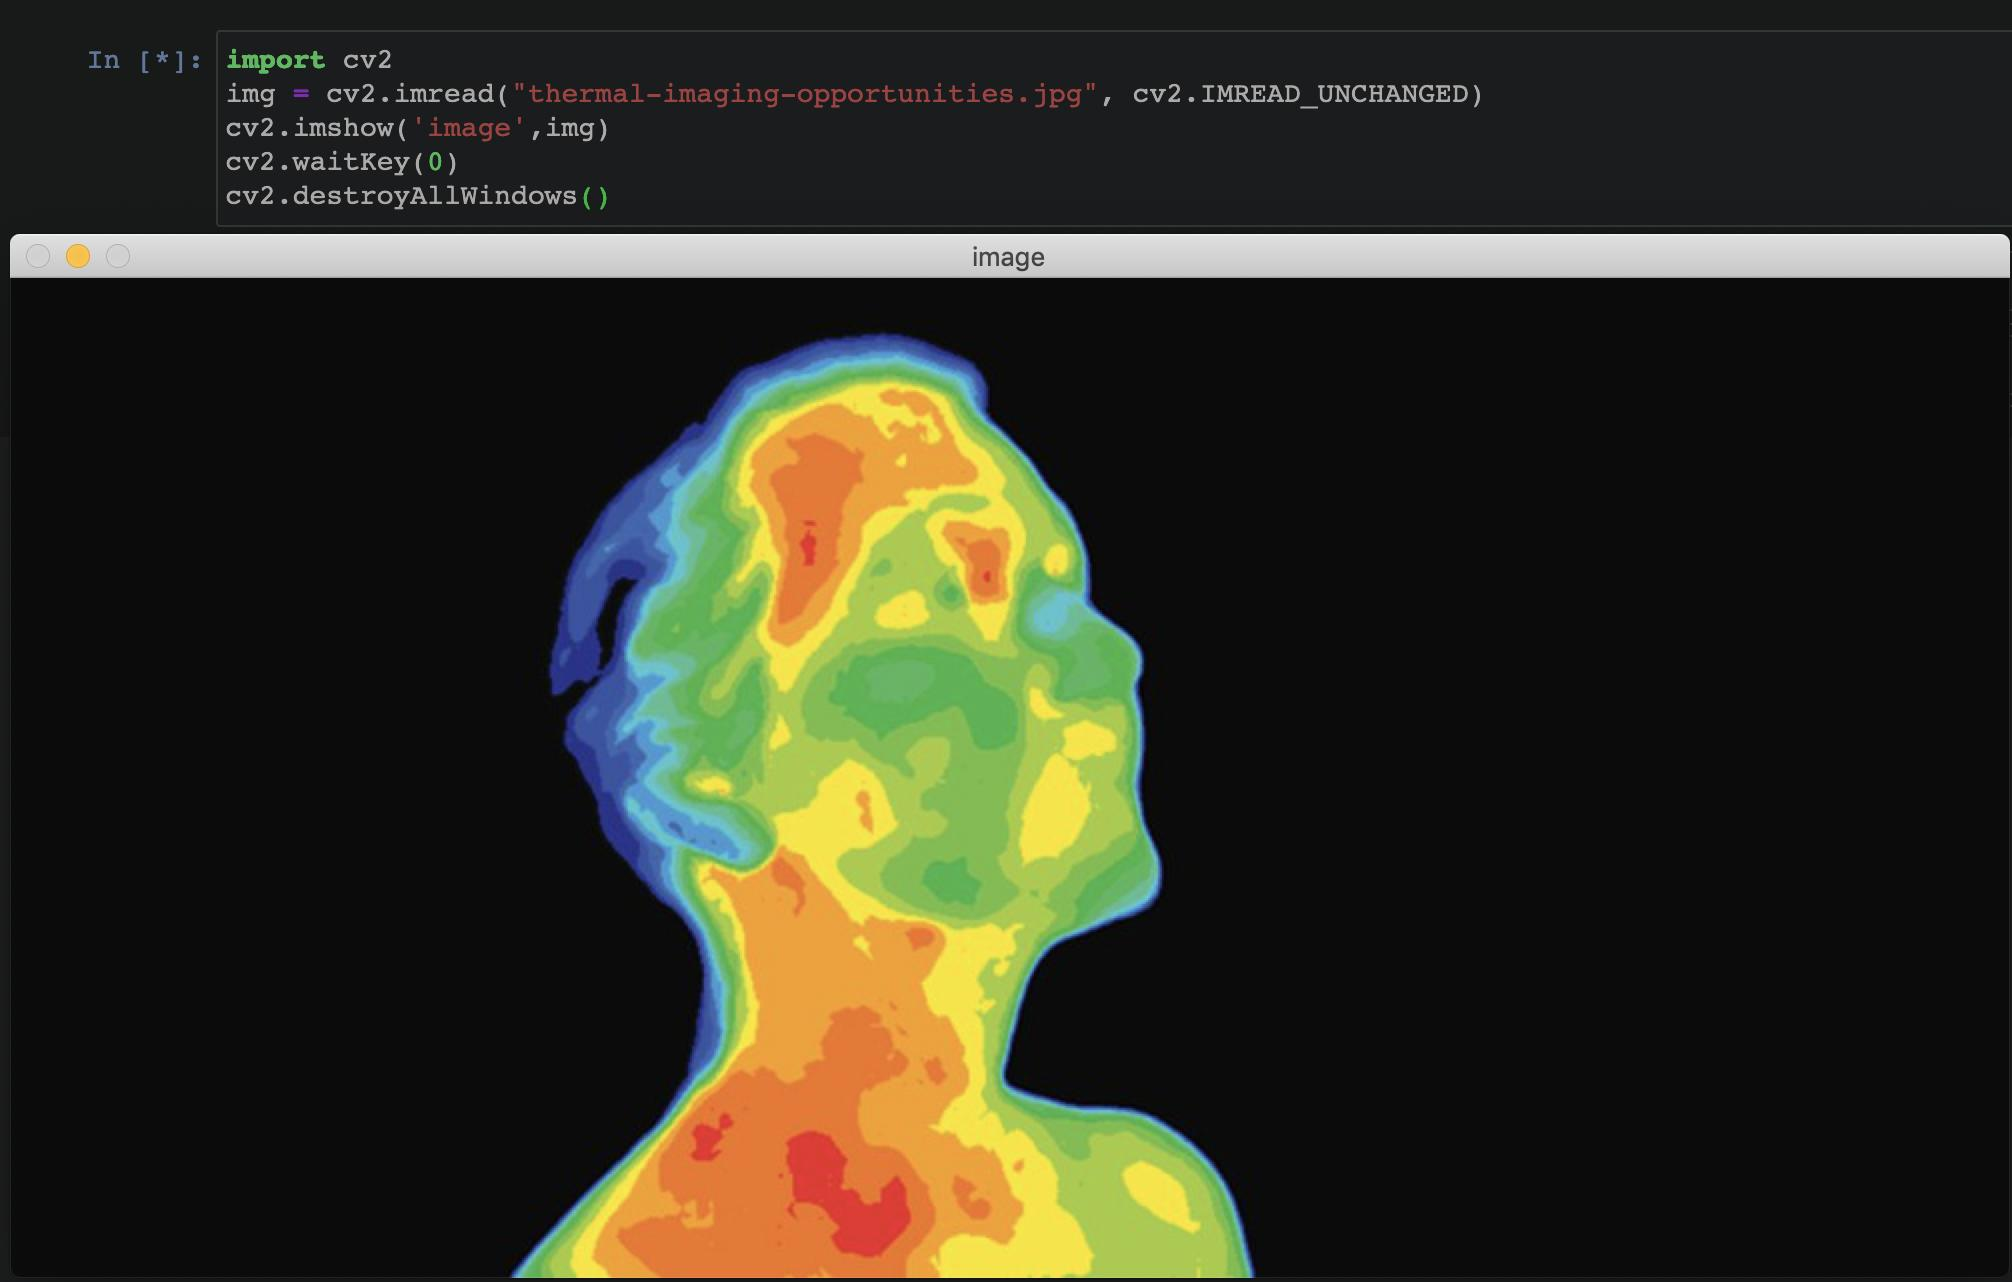 python - viewing a tif image file using OpenCV in Jupyter notebook - Stack Overflow